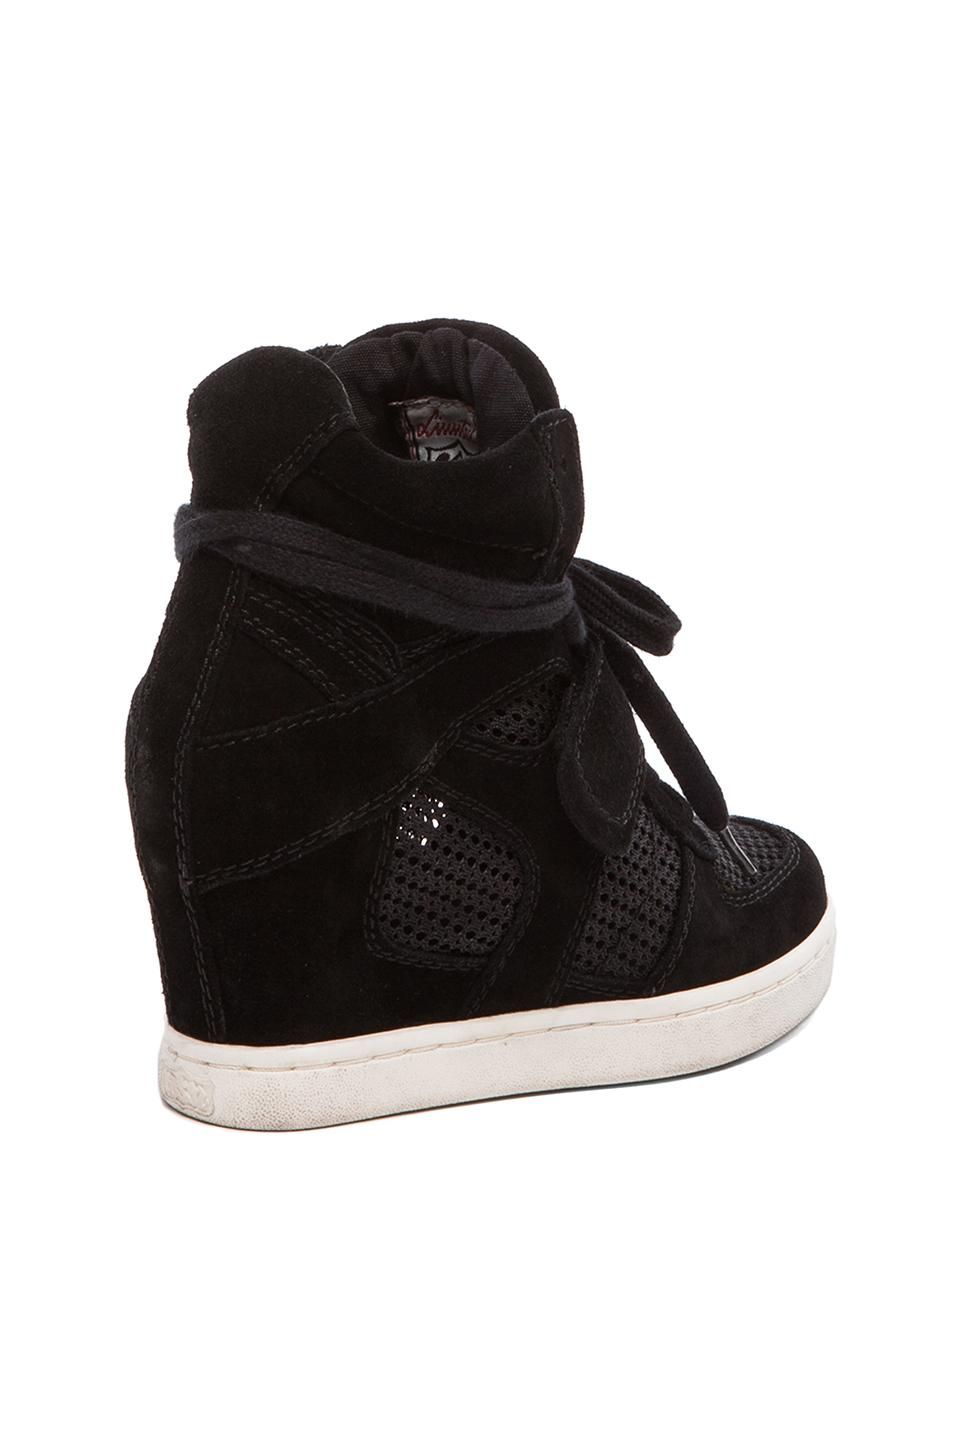 Ash Cool Mesh Wedge Sneaker in Black/Black